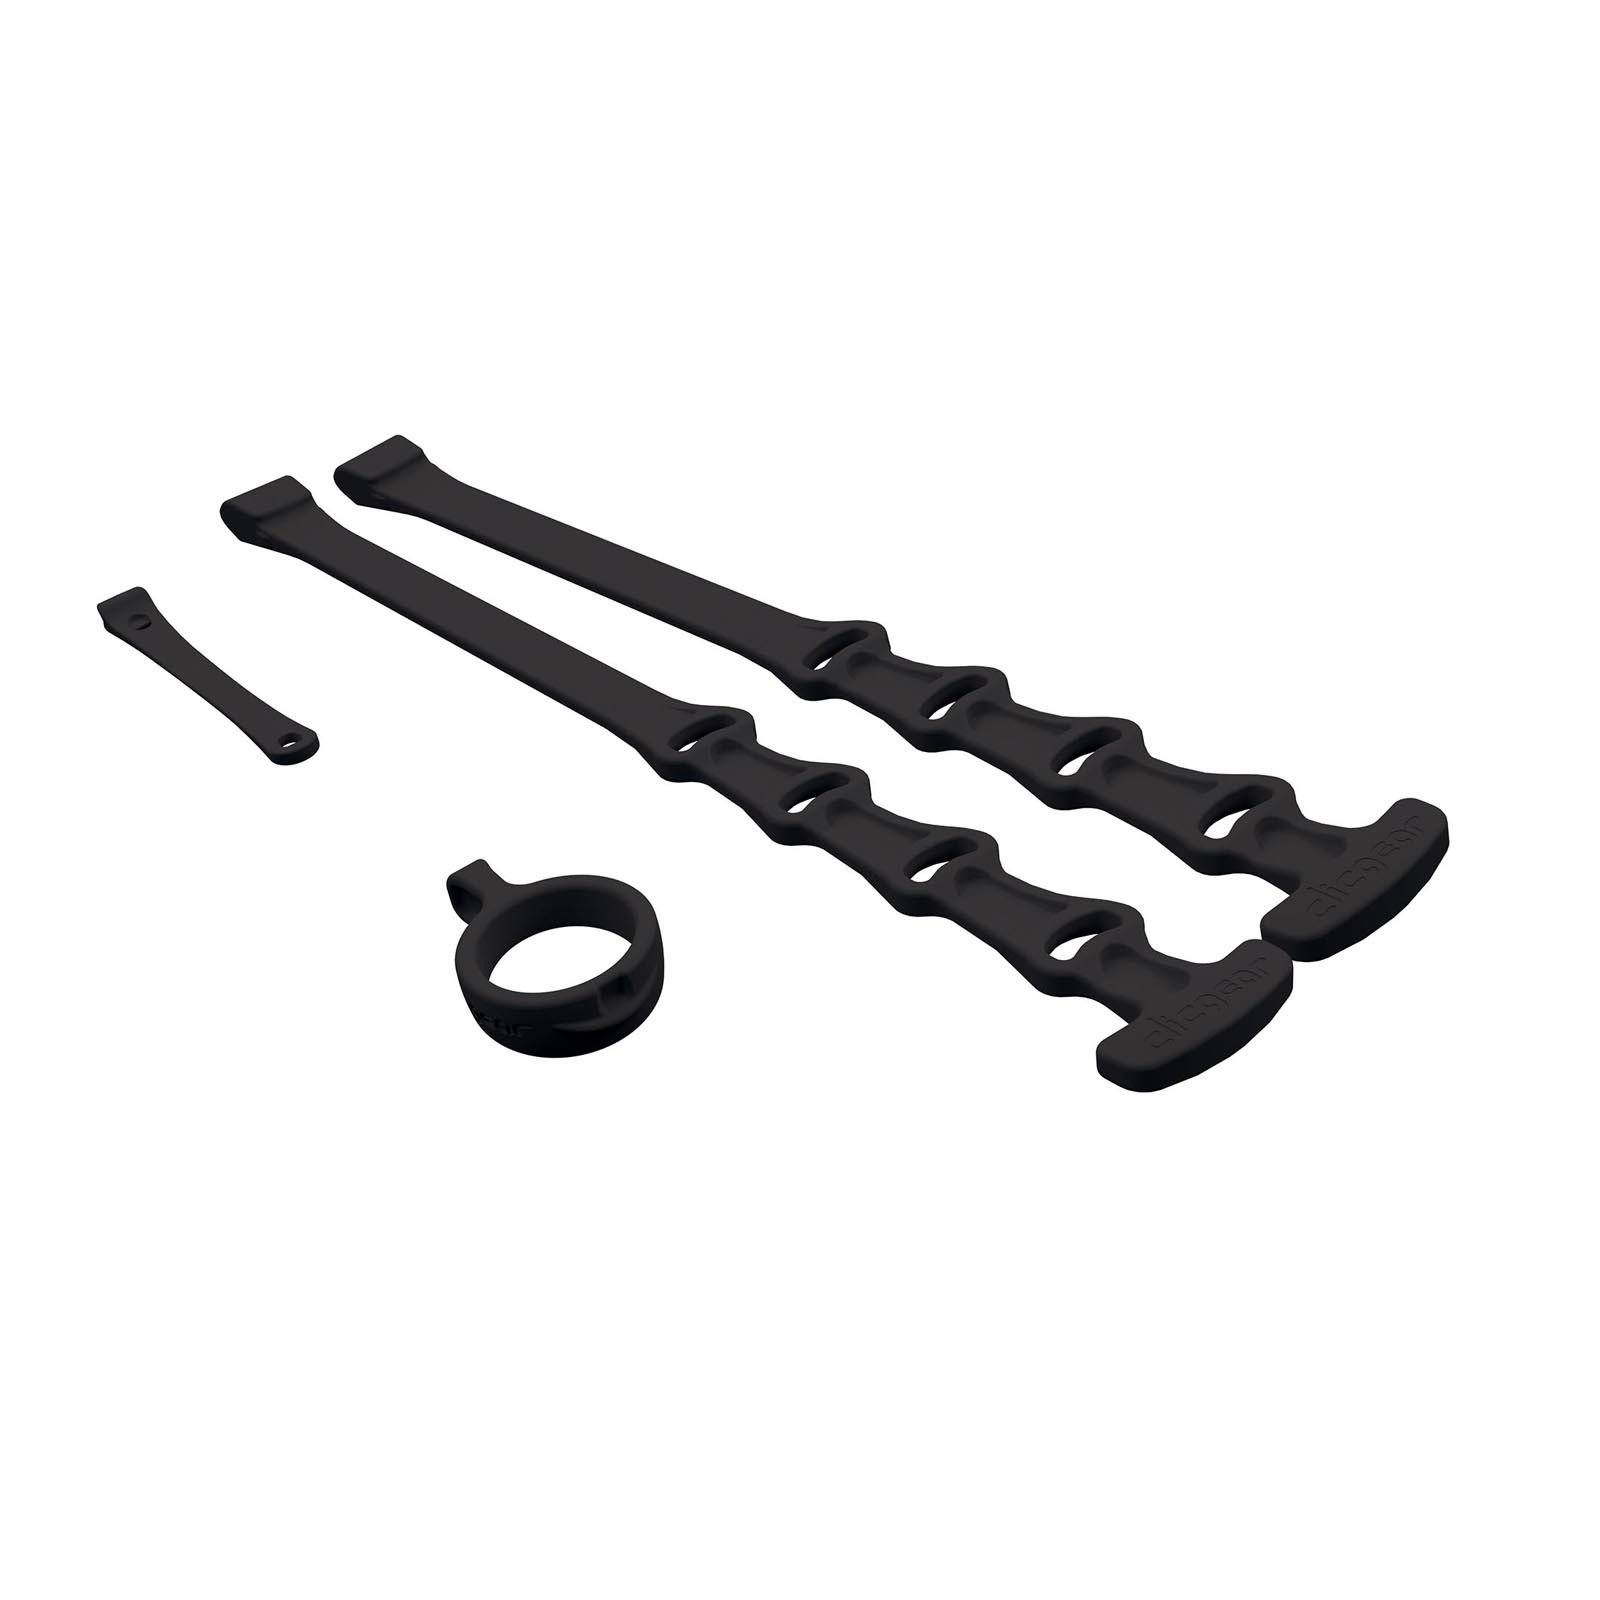 Clicgear 4.0/6.0 Trim Kits